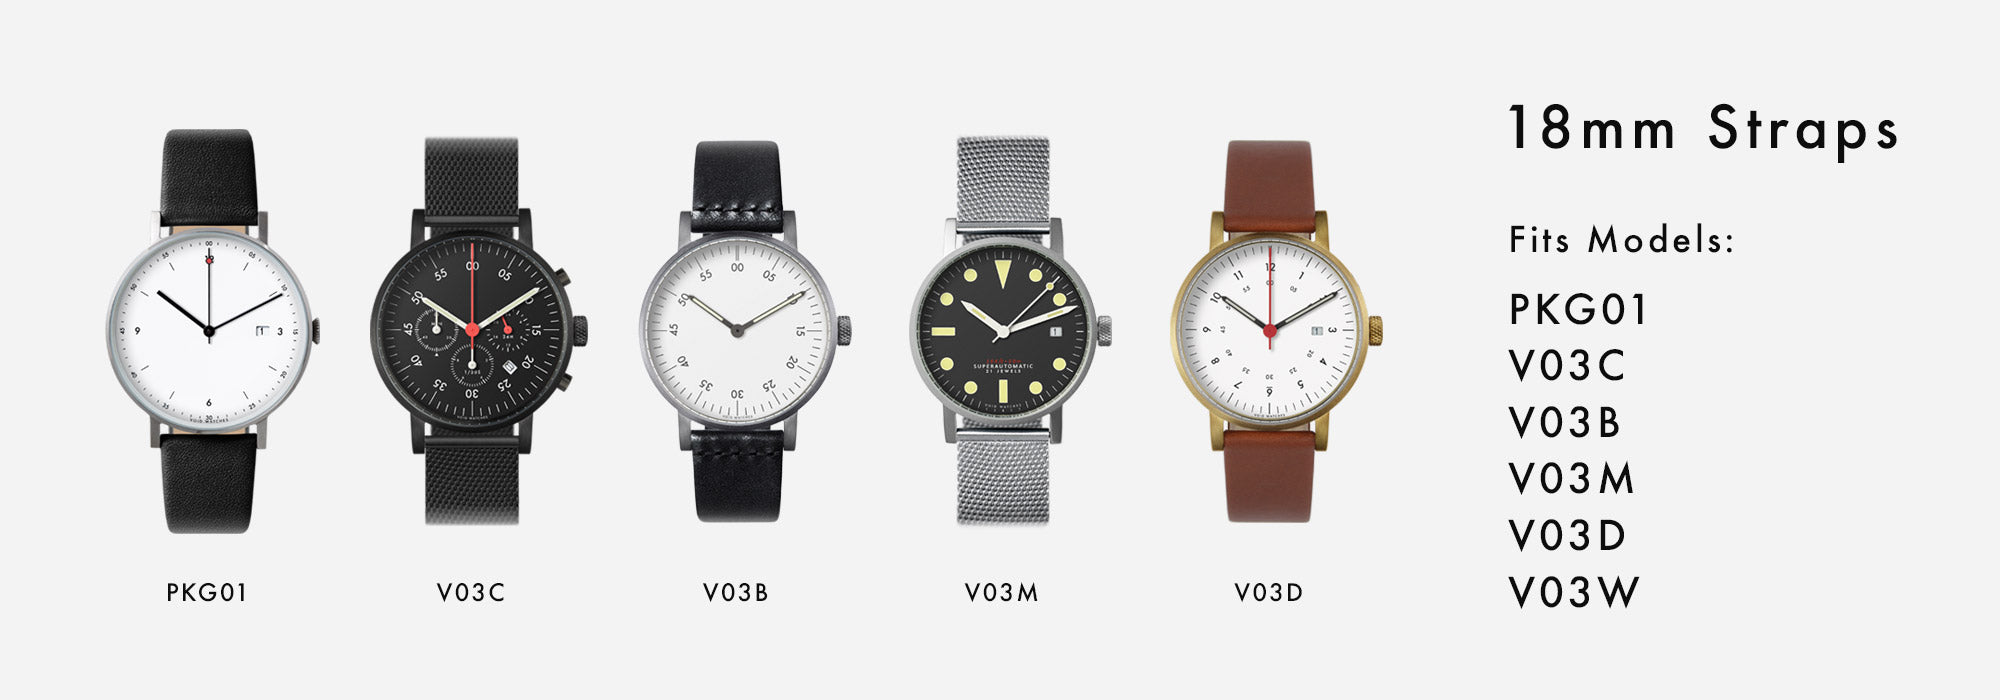 VOID Watches - 18mm Straps